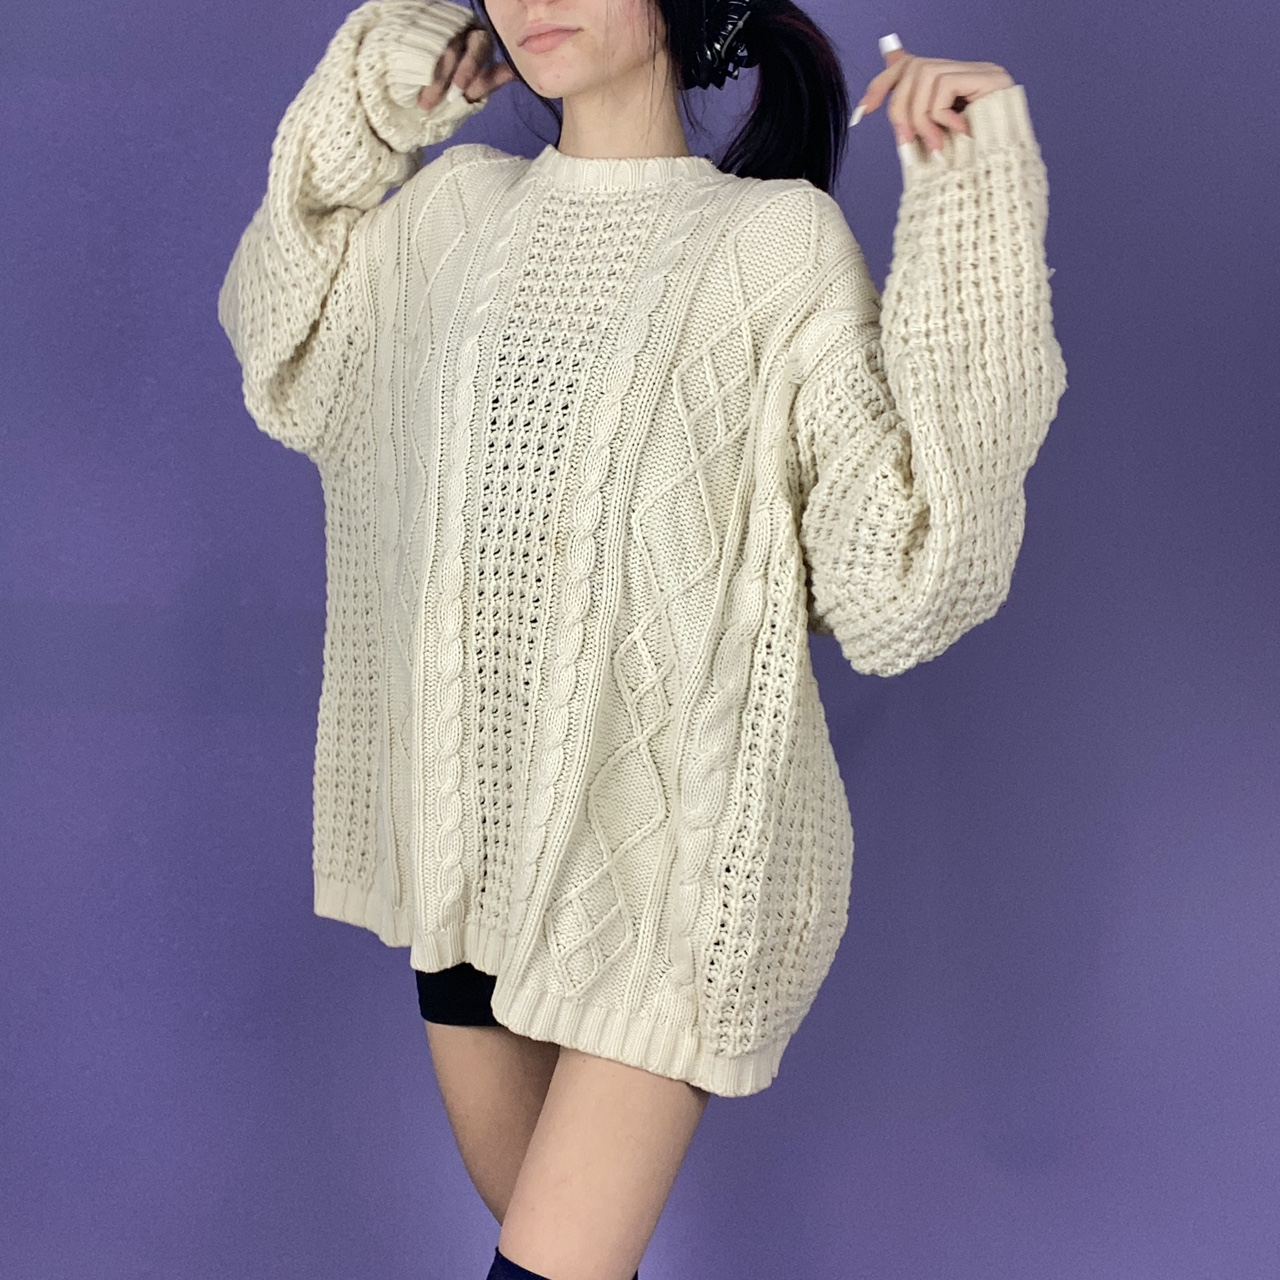 Product Image 1 - Knit Sweater 🧶  this sweater is